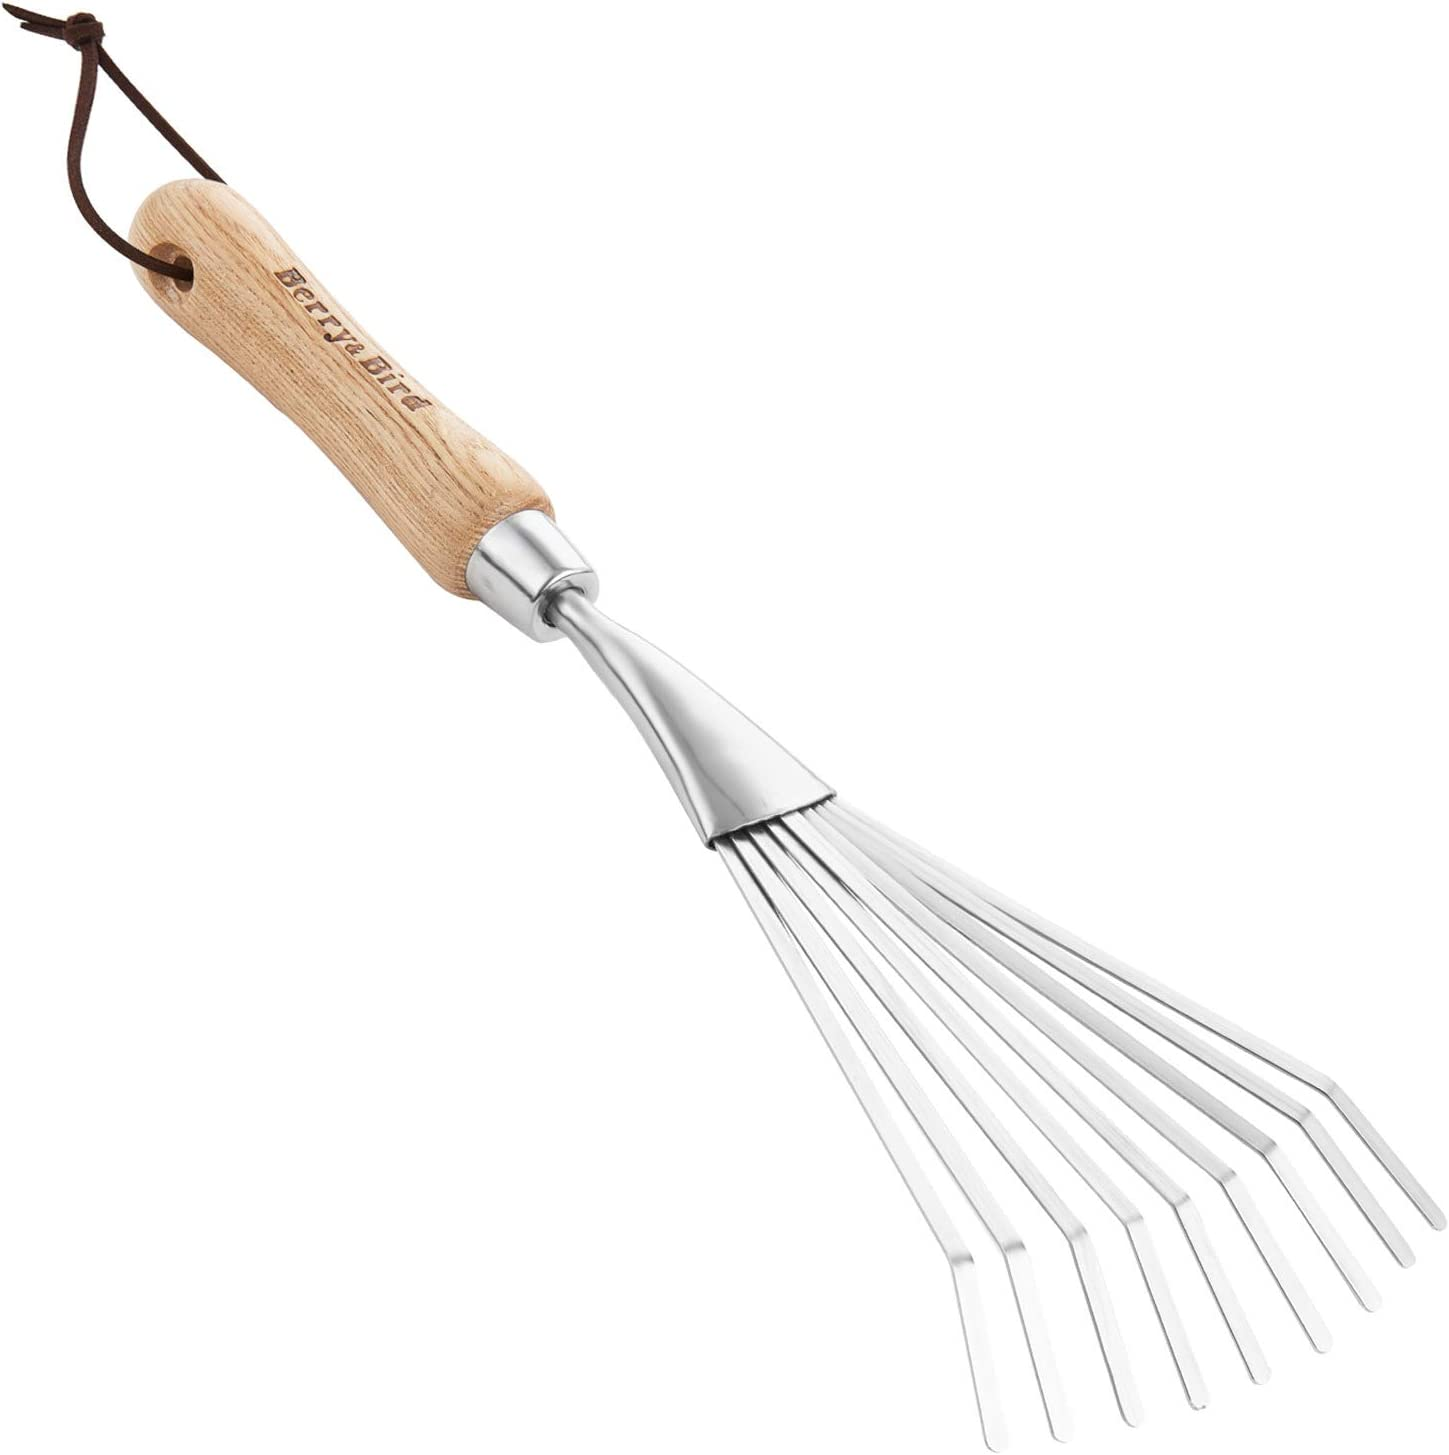 Berry&Bird Stainless Steel Hand Shrub Grass Rake, 9 Teeth Fan Lawn Leaf Rake with Wooden Handle, Heavy Duty Gardening Tools for Garden Patio Backyard and Small Places, Sweep, Picking